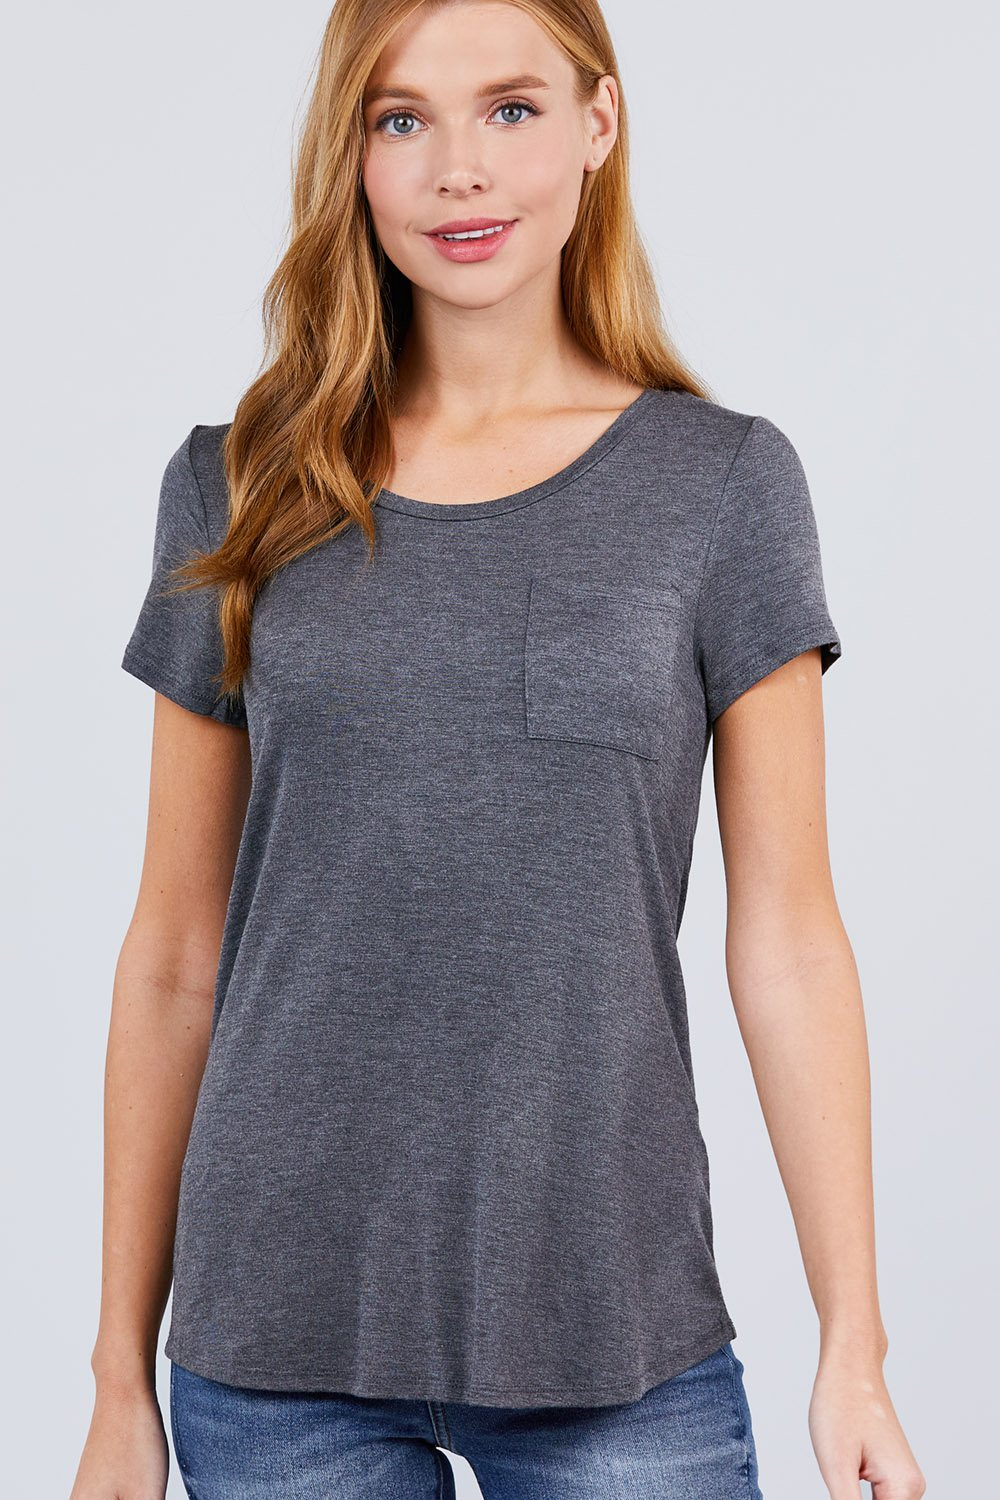 EDDIE S/S Scoop Neck Top With Pocket